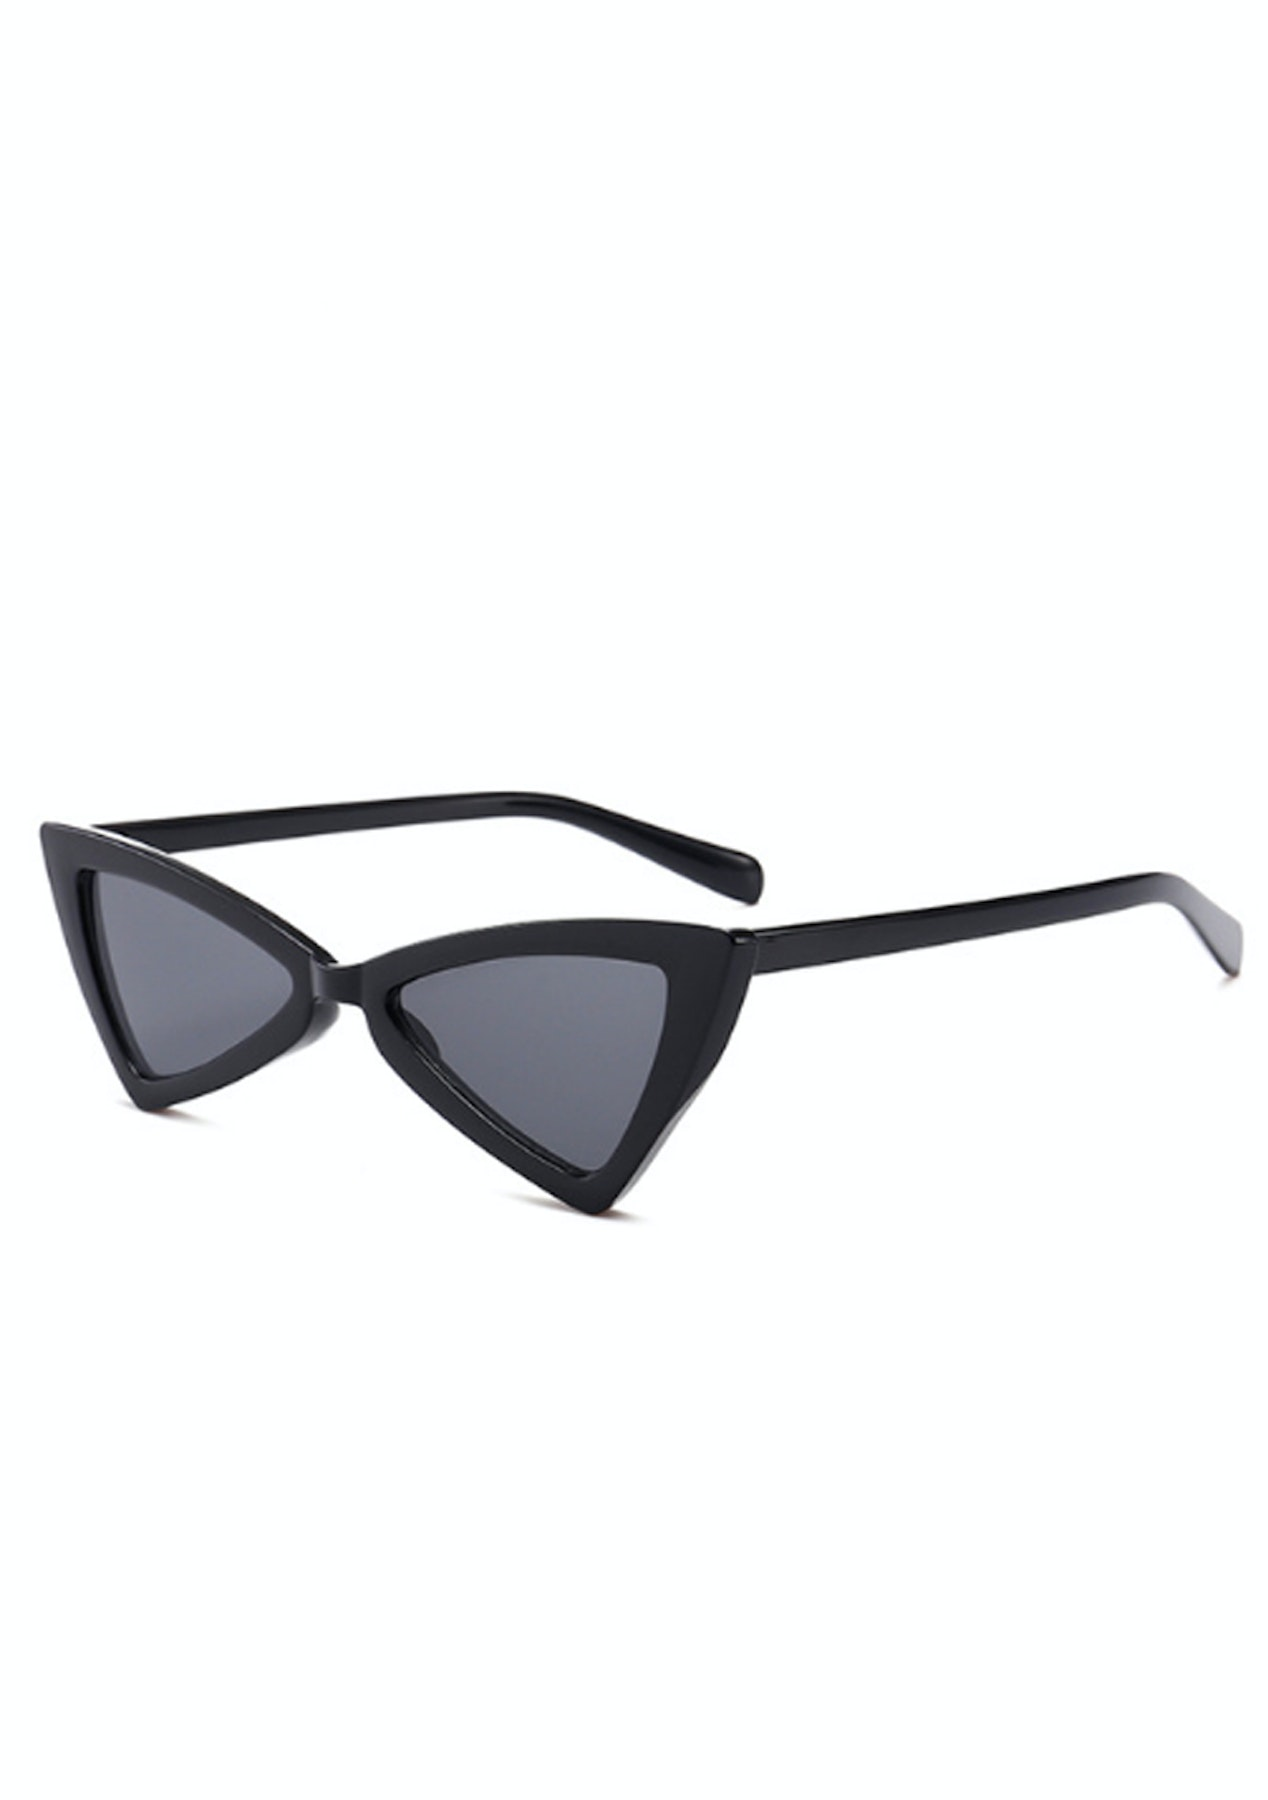 51c8070e436 Watching You Sunglasses - Black - Sunglasses Steals from  9.95 - Onceit